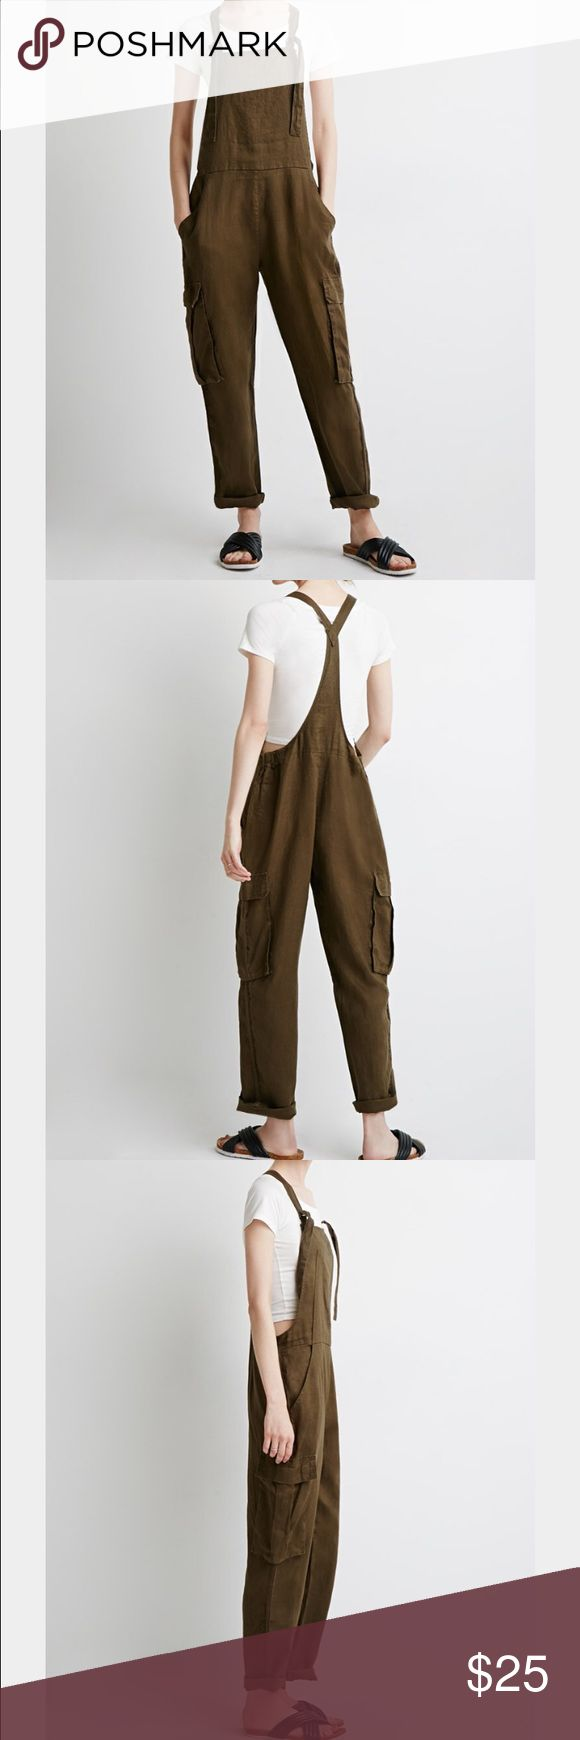 Contemporary Utility Linen Overalls Super comfortable hunter green linen Overalls. Pair it with a crop top or tee for an easy laid back look  Forever 21 Other